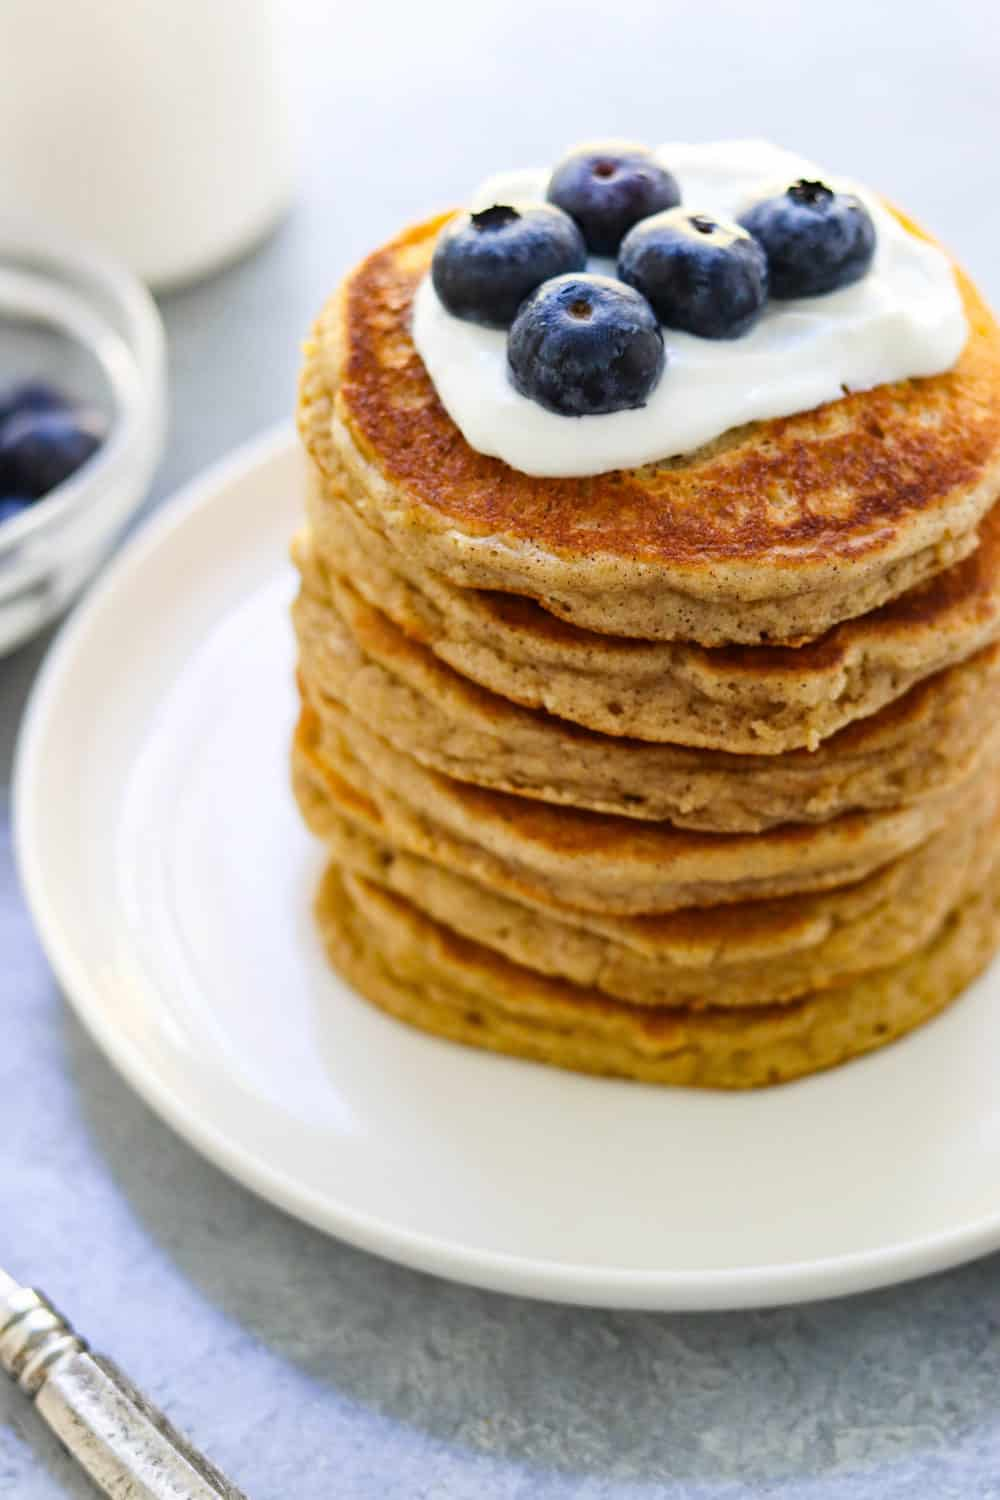 large stack of fluffy almond flour pancakes with whipped cream and a few blueberries on top of the pancakes